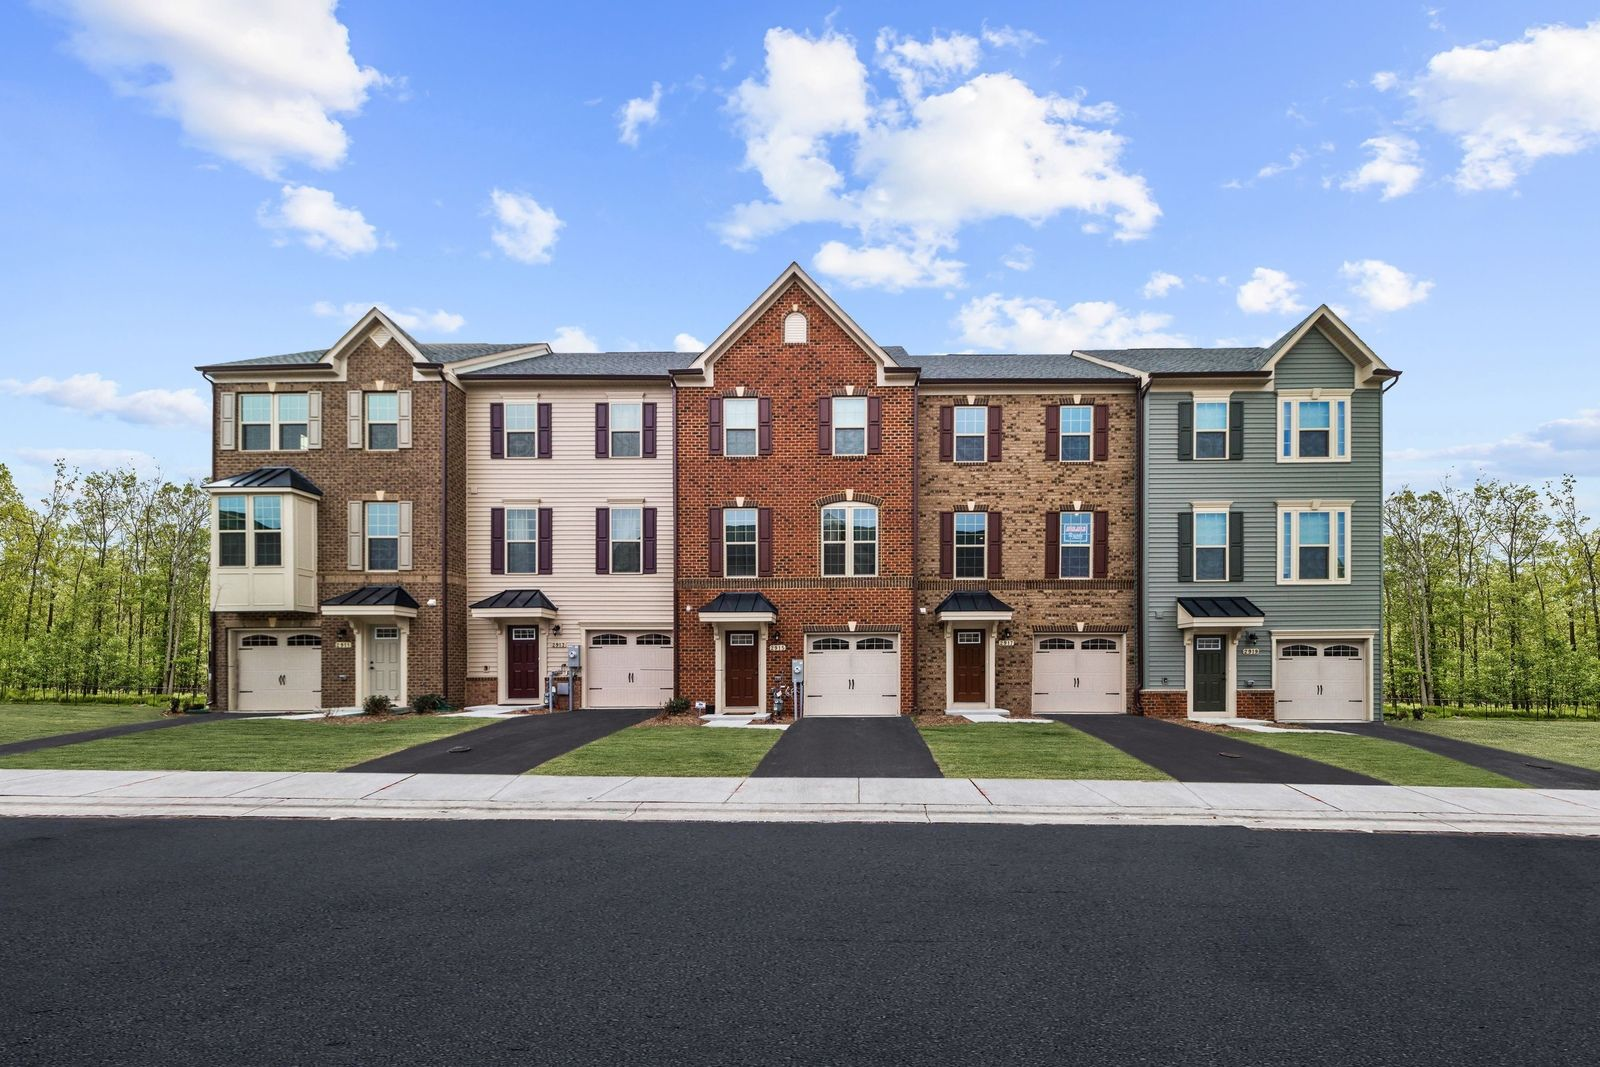 JOIN THE VIP LIST TO GET THE LATEST UPDATES AND LOWEST PRICING:Coming Soon - End October 2020!1 & 2 Car Garage Townhomes in a convenient location from the mid-upper $300s!Join the VIP List Today!